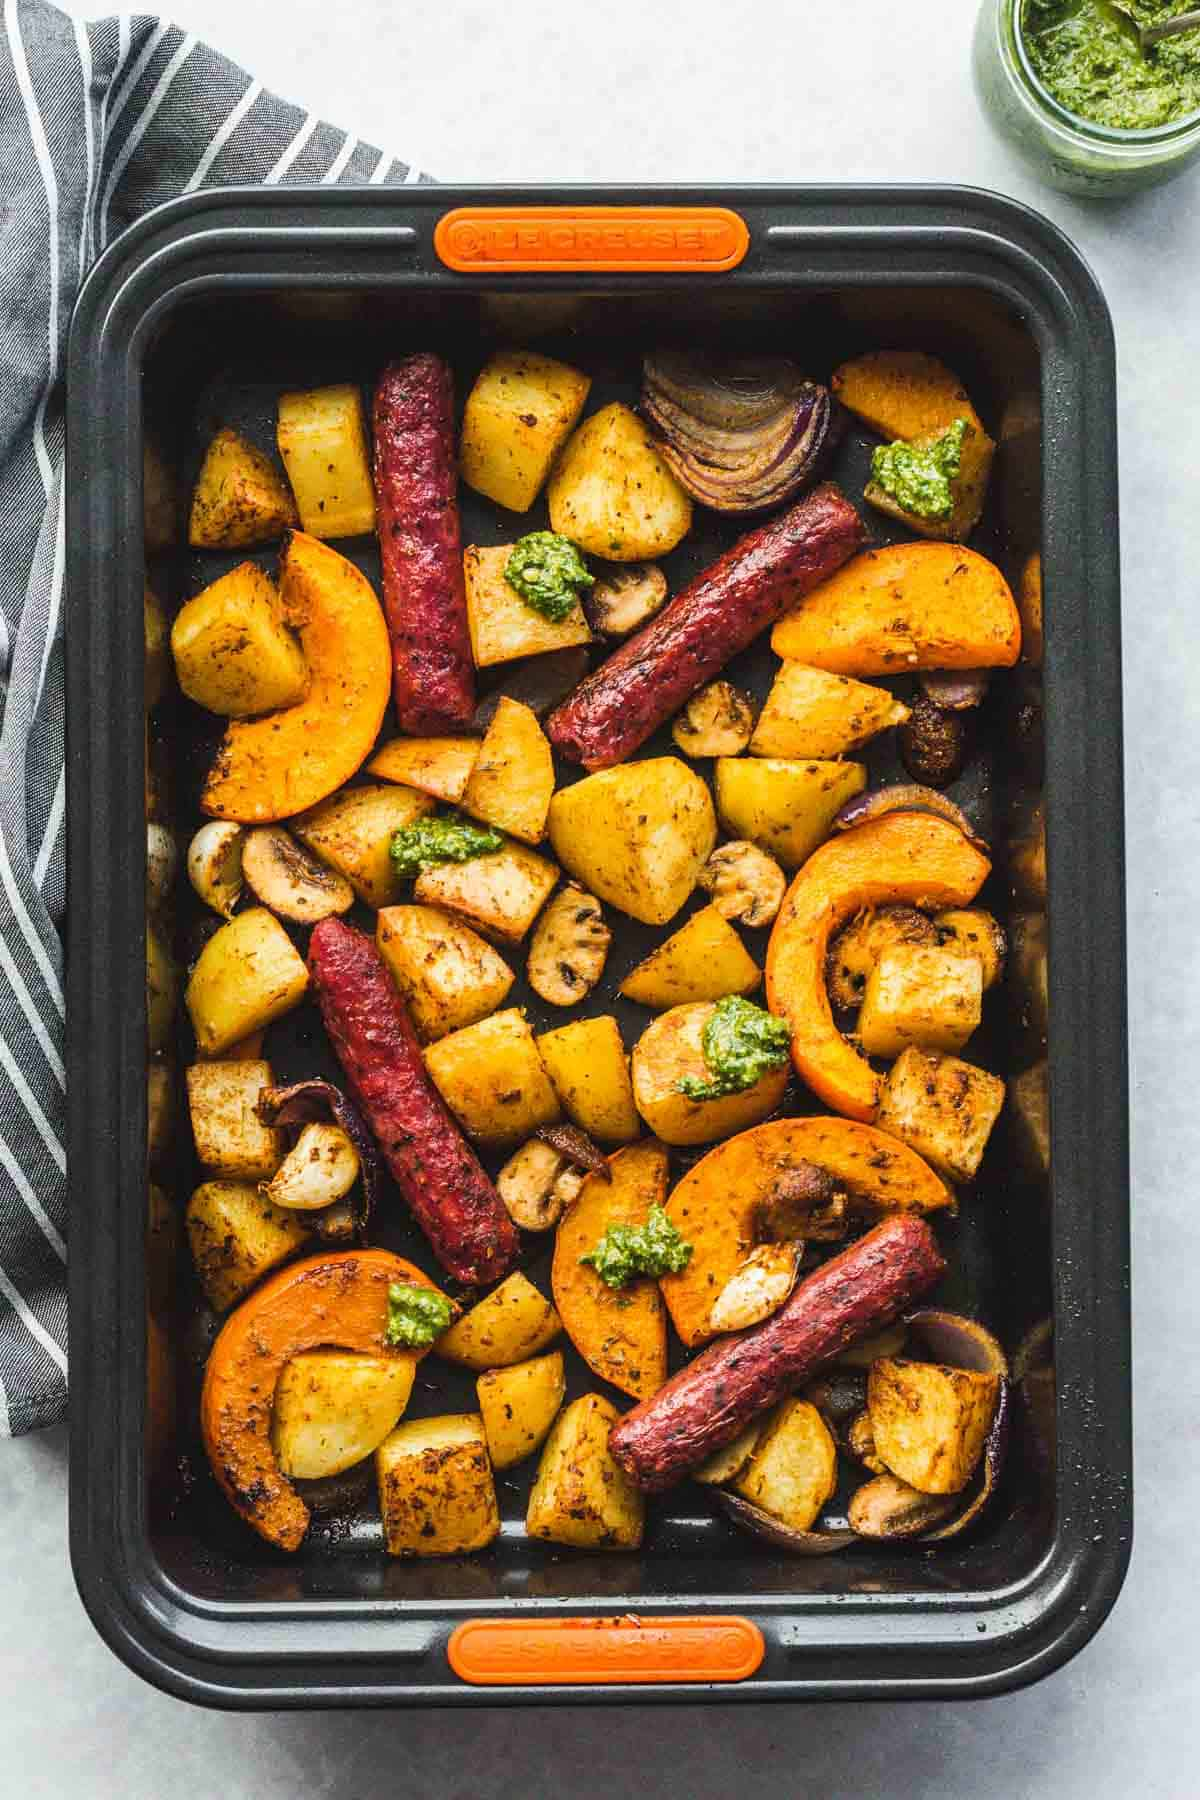 Sheet Pan Sausage and Veggies ready in a roasting tin